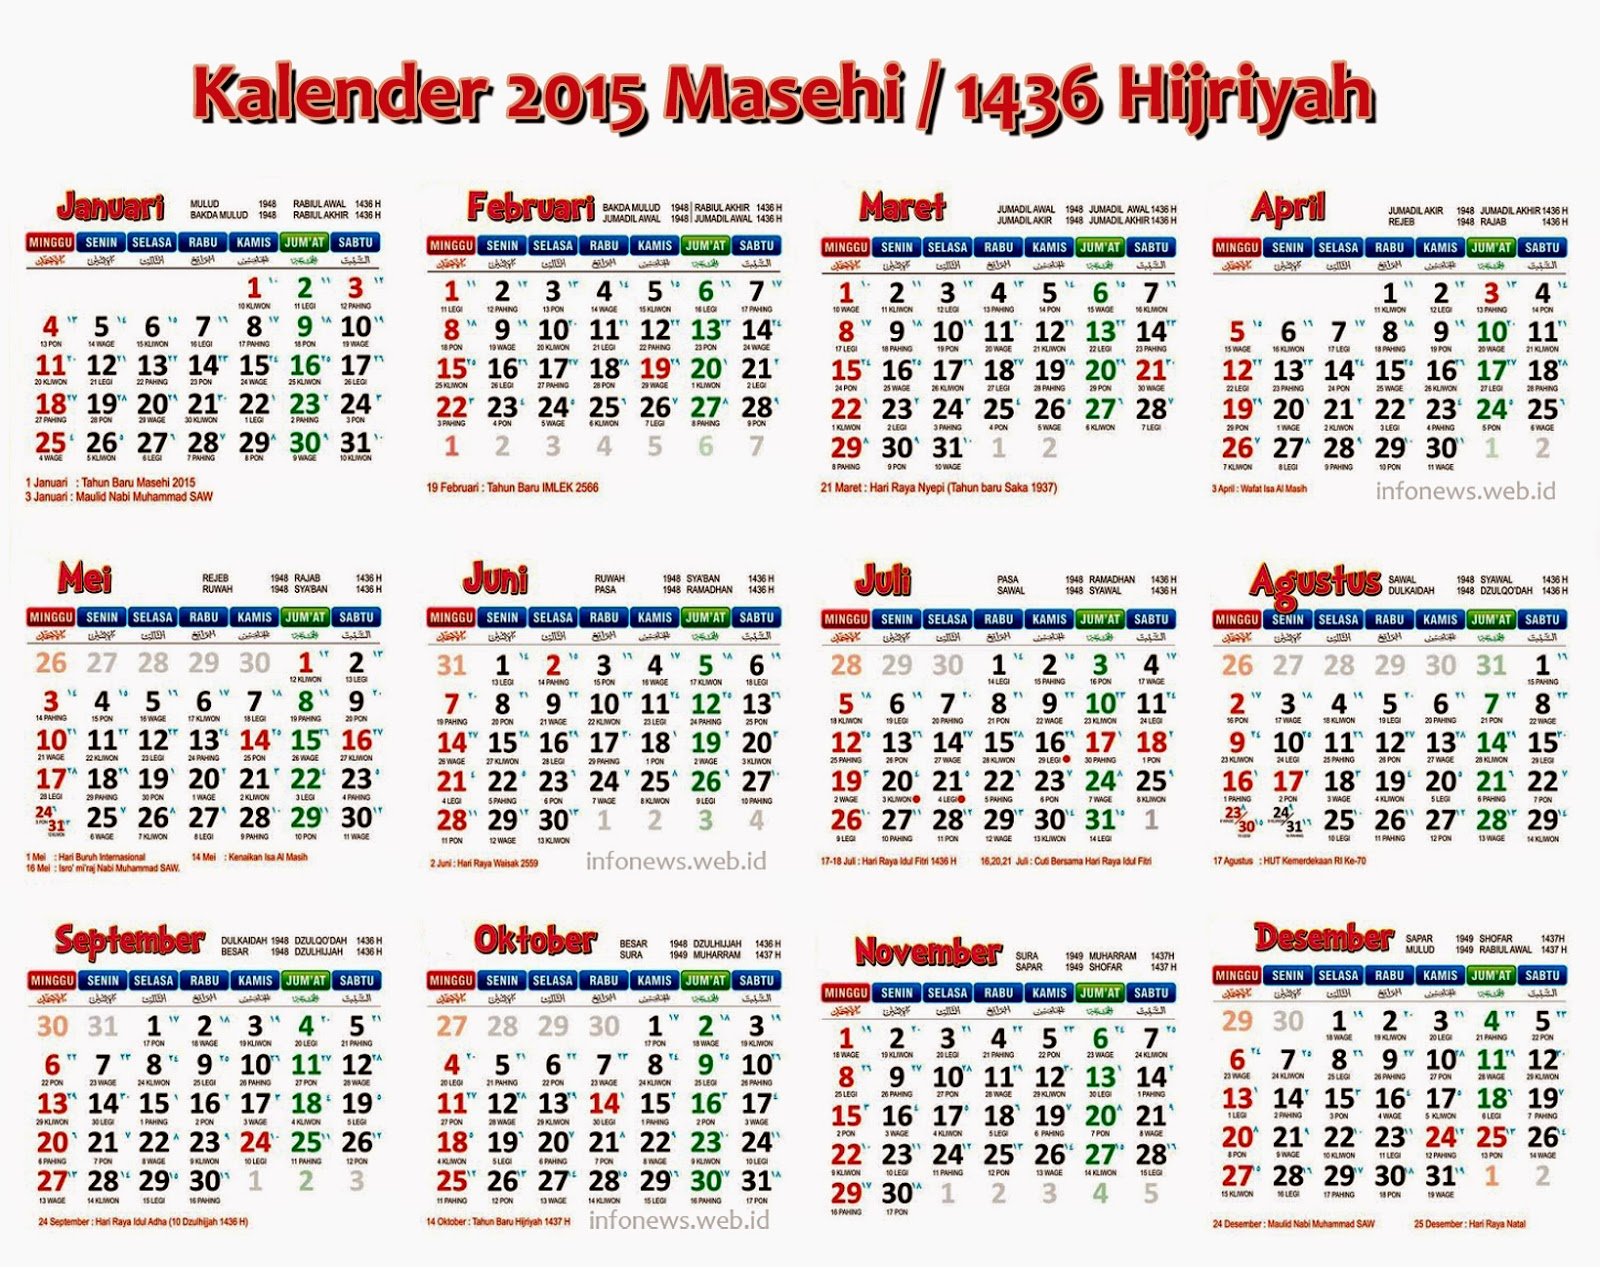 Kalender 2015 Images - Card Design And Card Template